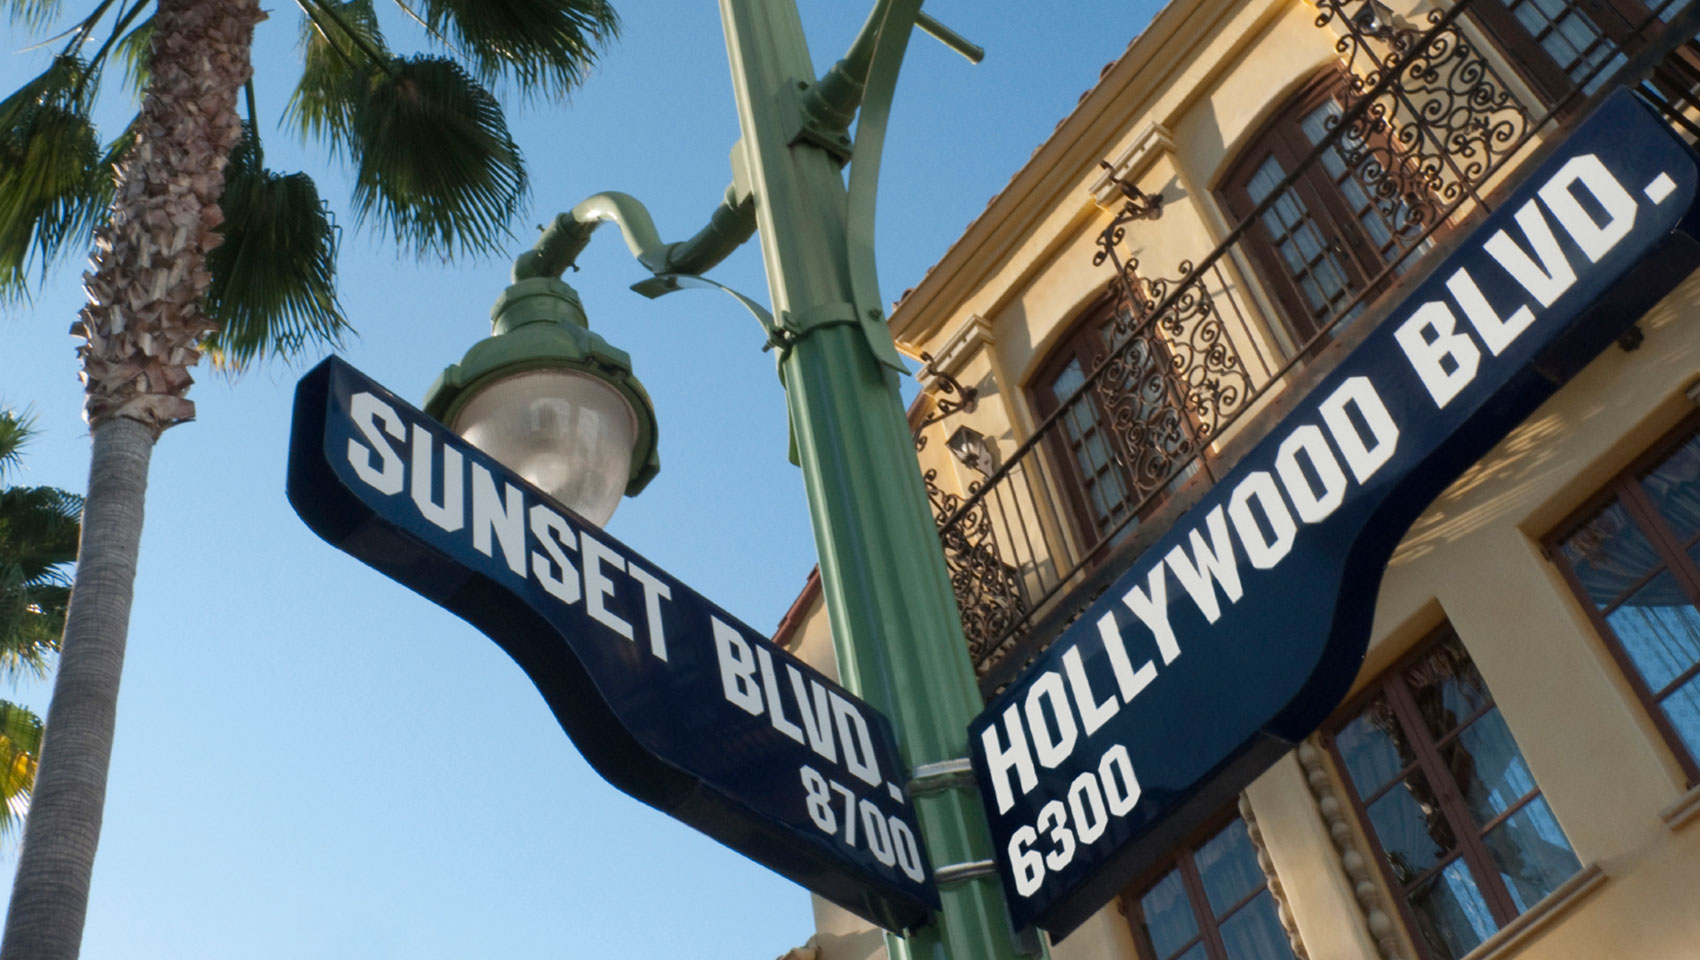 hollywood blvd street sign intersection sunset blvd